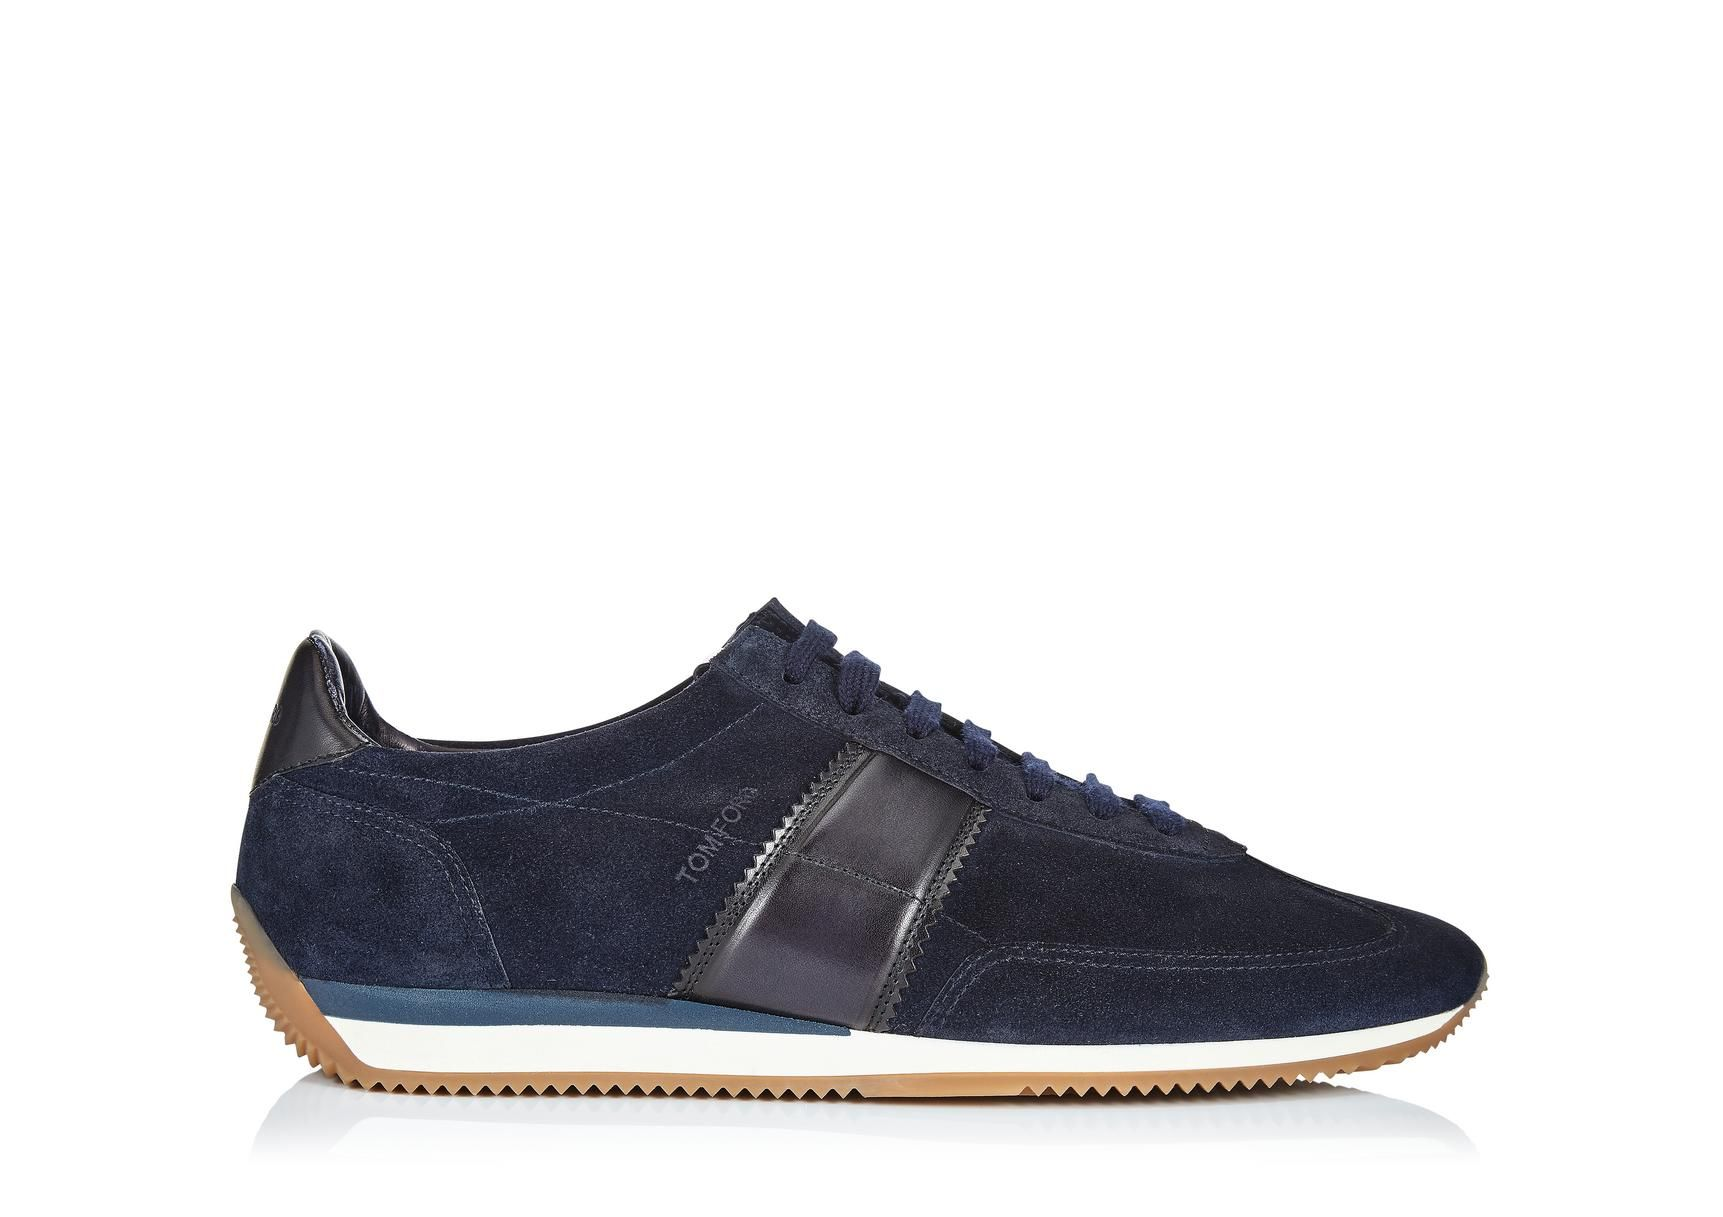 Tom ford jeans, Suede sneakers